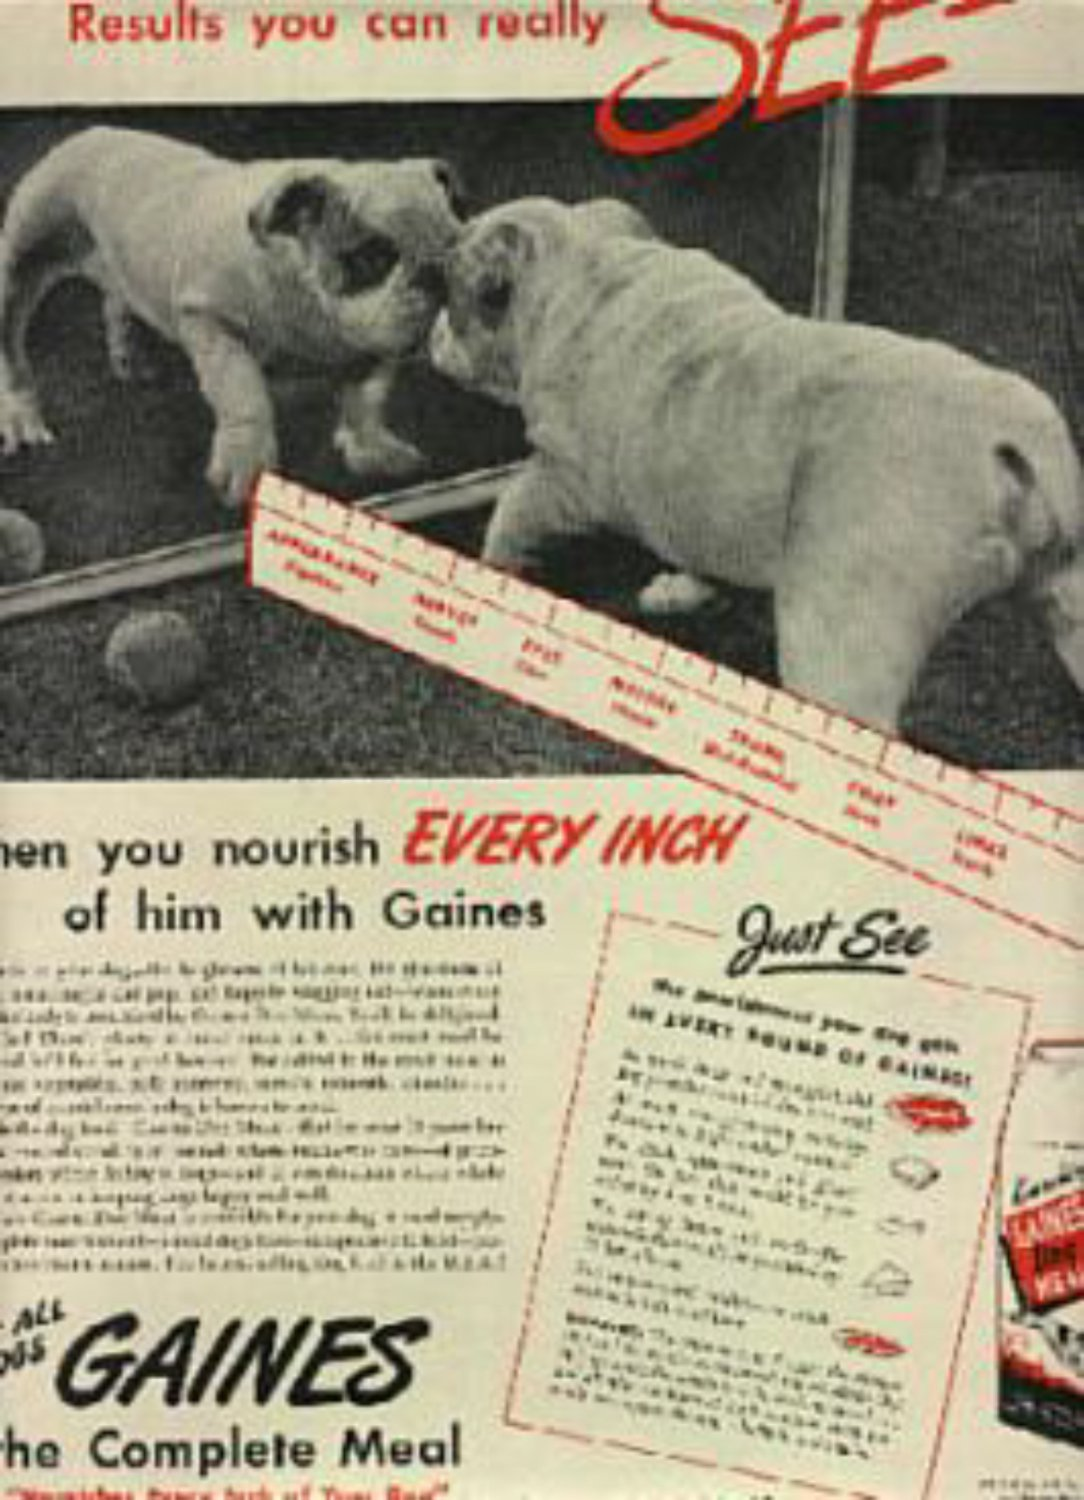 1945 Gaines Dog Meal ad (# 814)